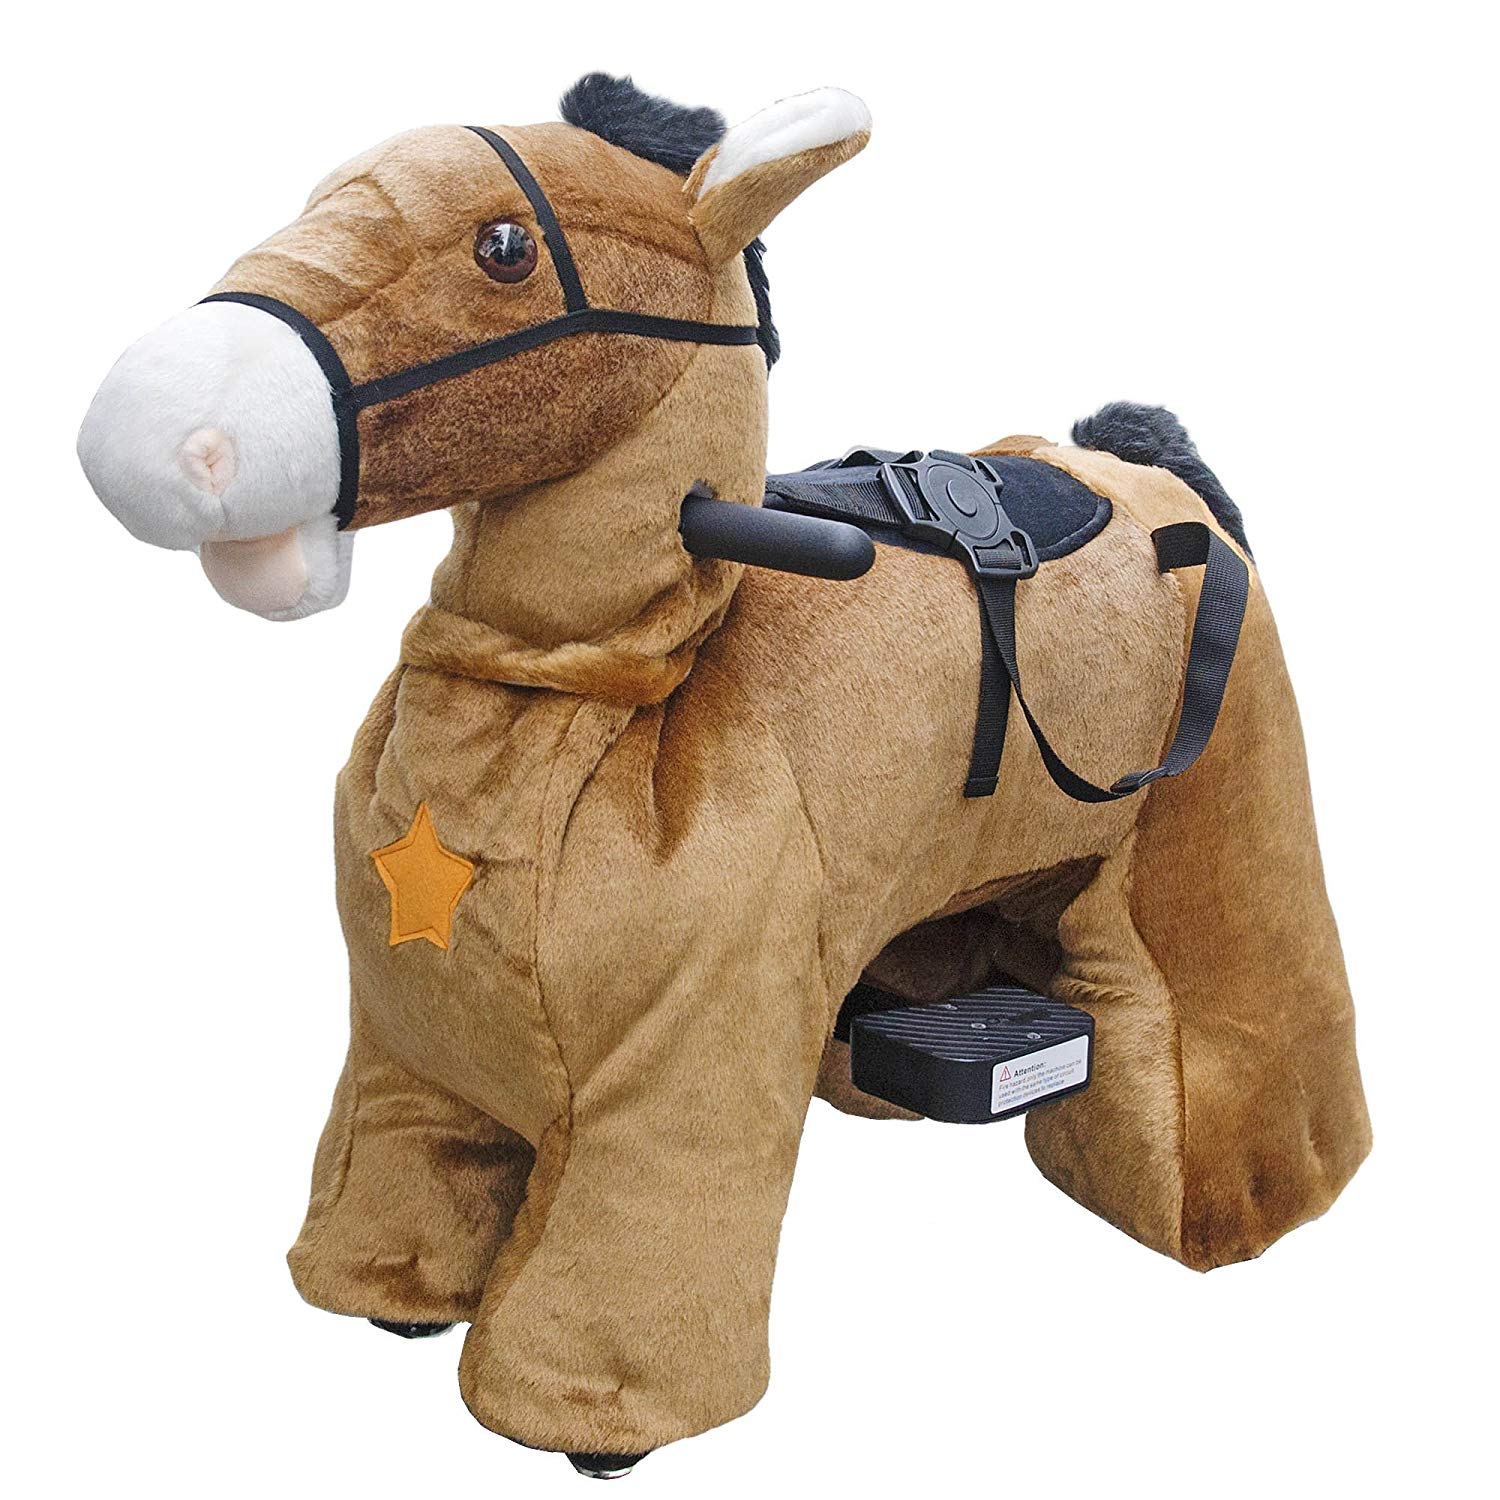 Rechargeable 6V 7A Plush Animal Ride On Toy for Kids (3 ~ 7 Years Old) With Safety Belt Horse by HOVERHEART